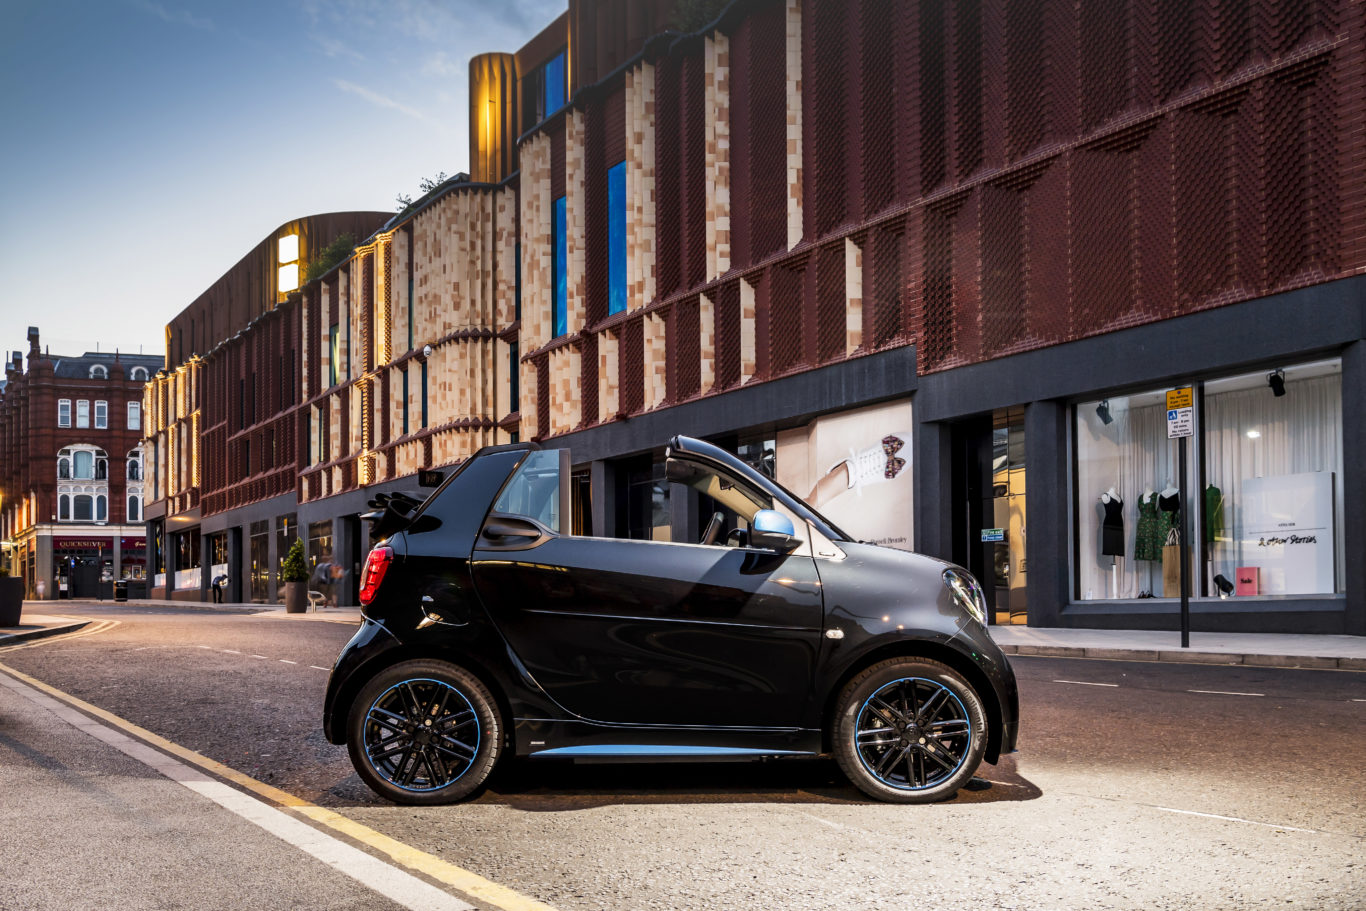 A compact size makes the ForTwo a great choice for urban drivers